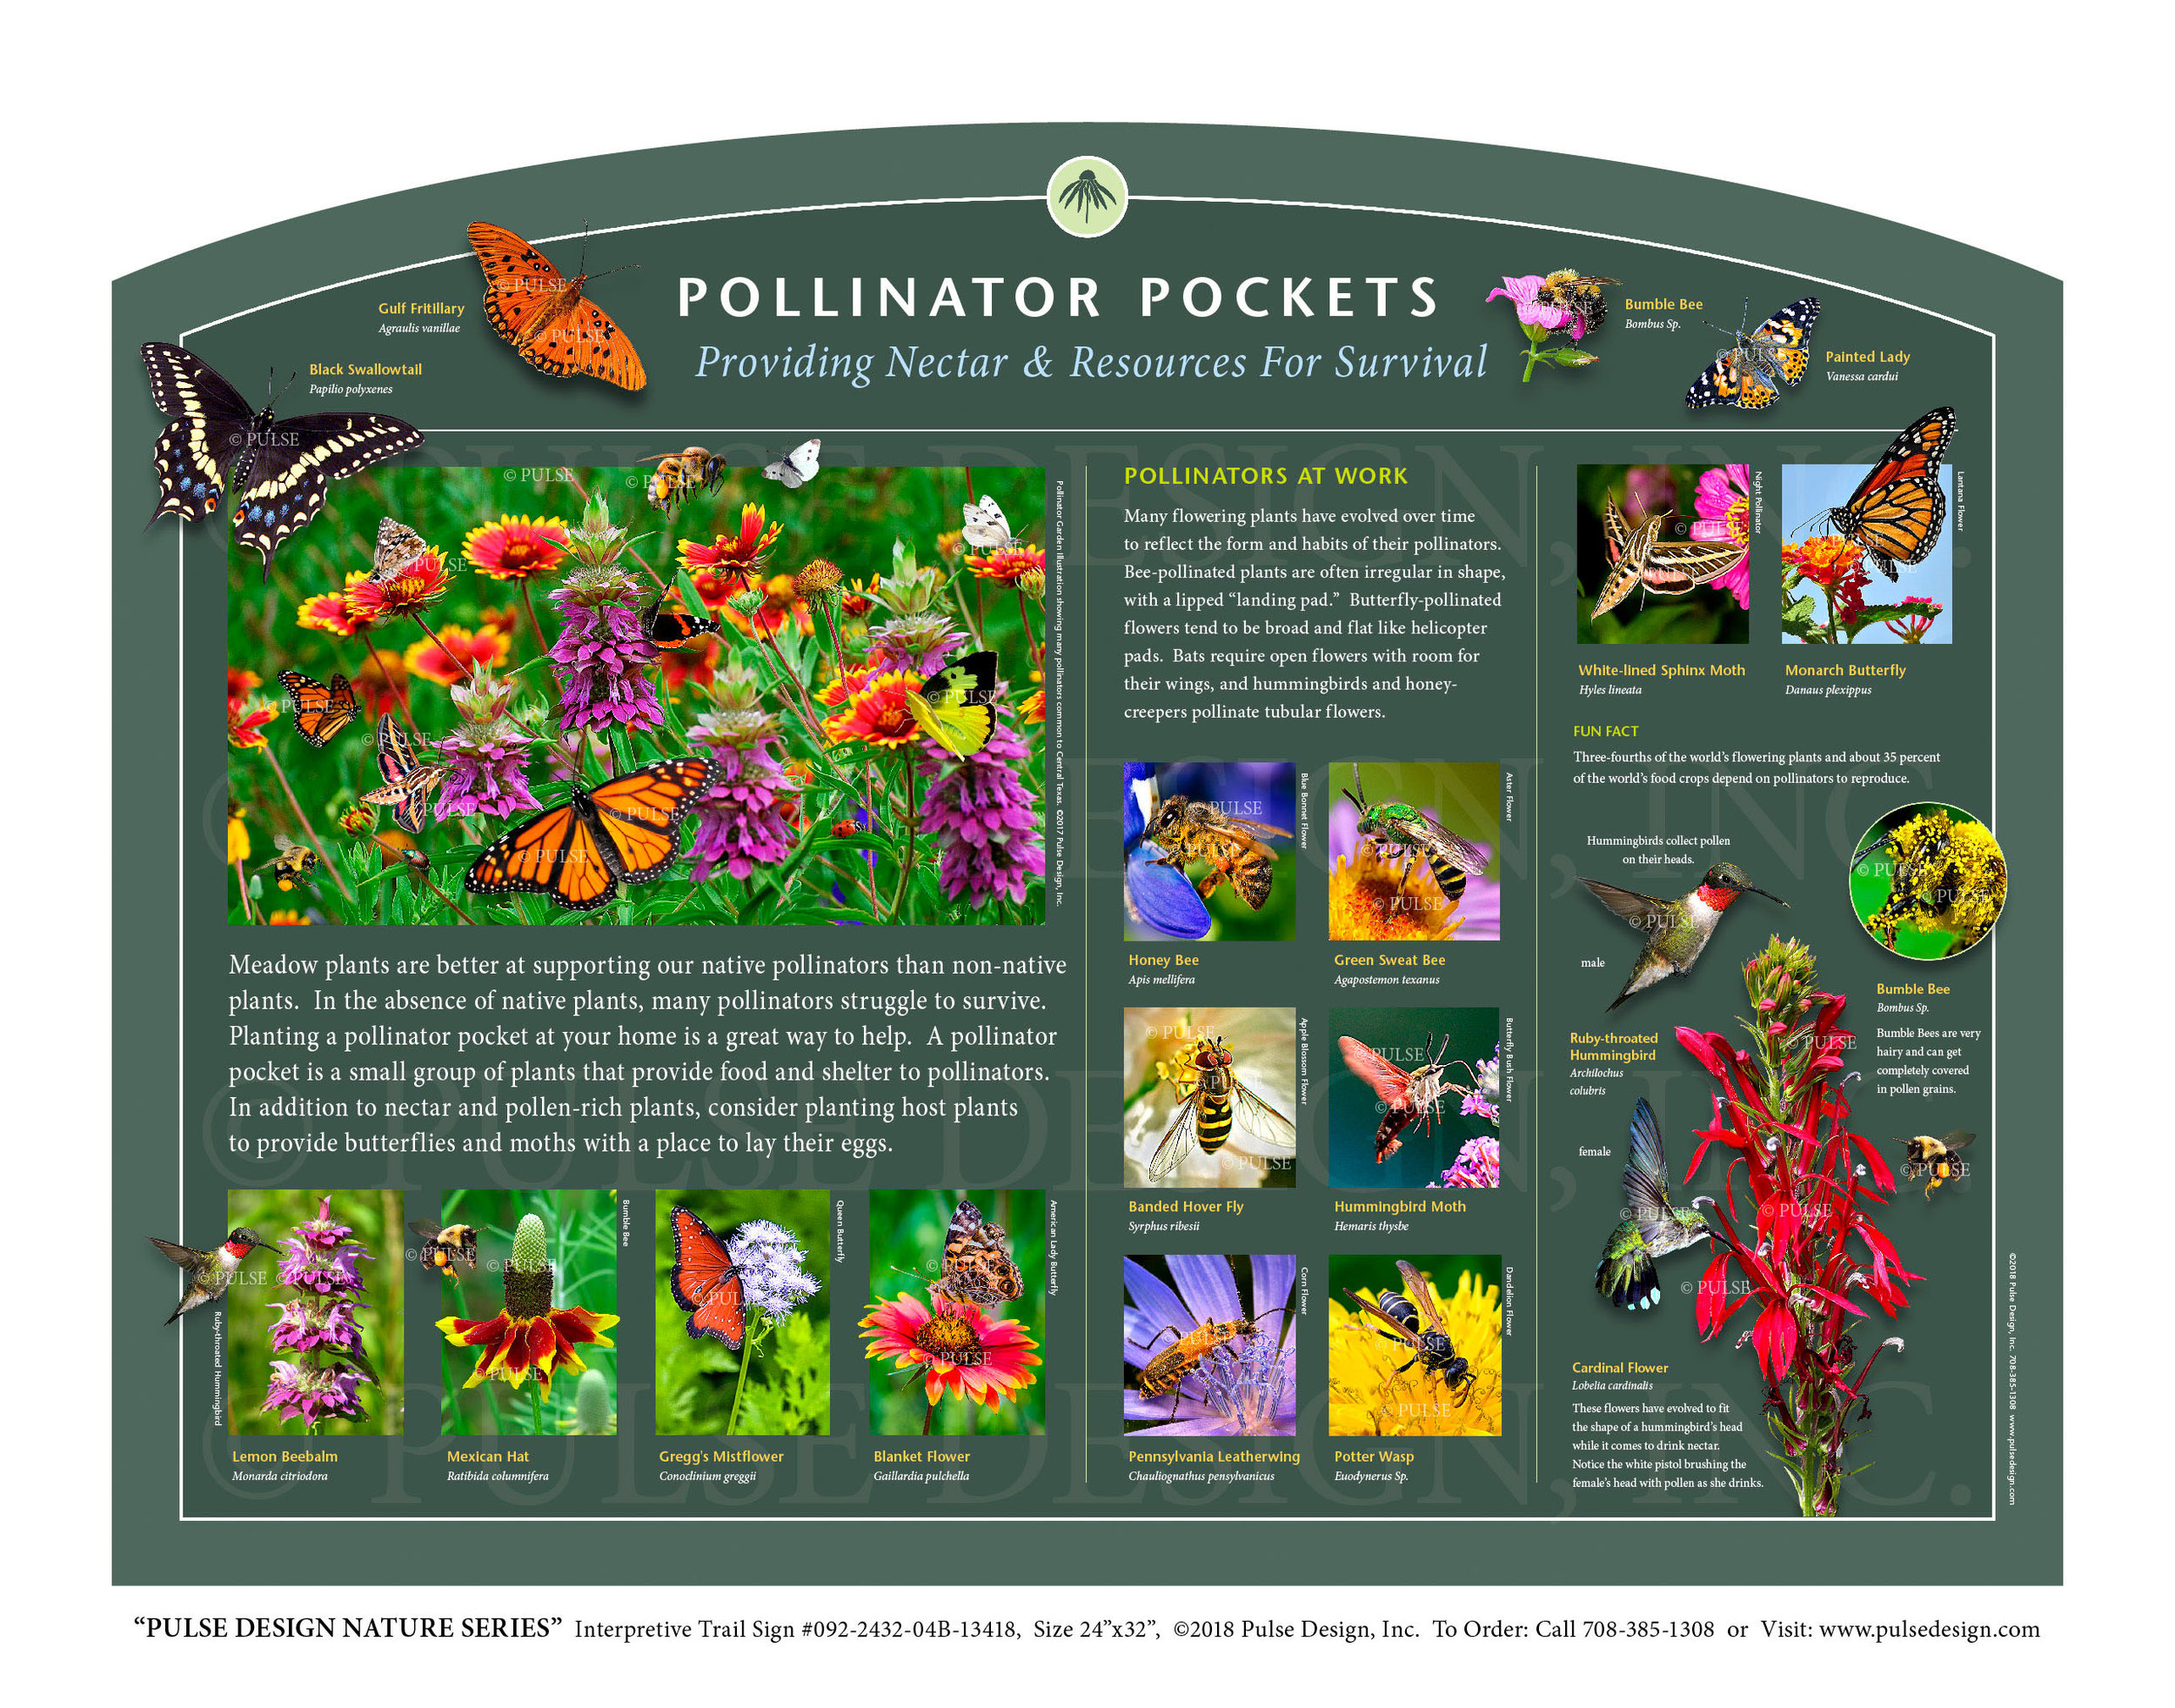 "Pulse Design provides Outdoor Interpretive Nature Trail Signs, Environmental Education Exhibits, Graphic Display Panels, Wayfinding Signage and Monuments, focused on Wildlife and Habitat throughout the United States. The  PULSE DESIGN NATURE SERIES  is a beautiful, ""Ready-to-Order"" and ""Customizable"" series of interpretive trail signs that cover many common nature subjects. See more signs from our  INSECTS & POLLINATOR SIGNS SERIES ."